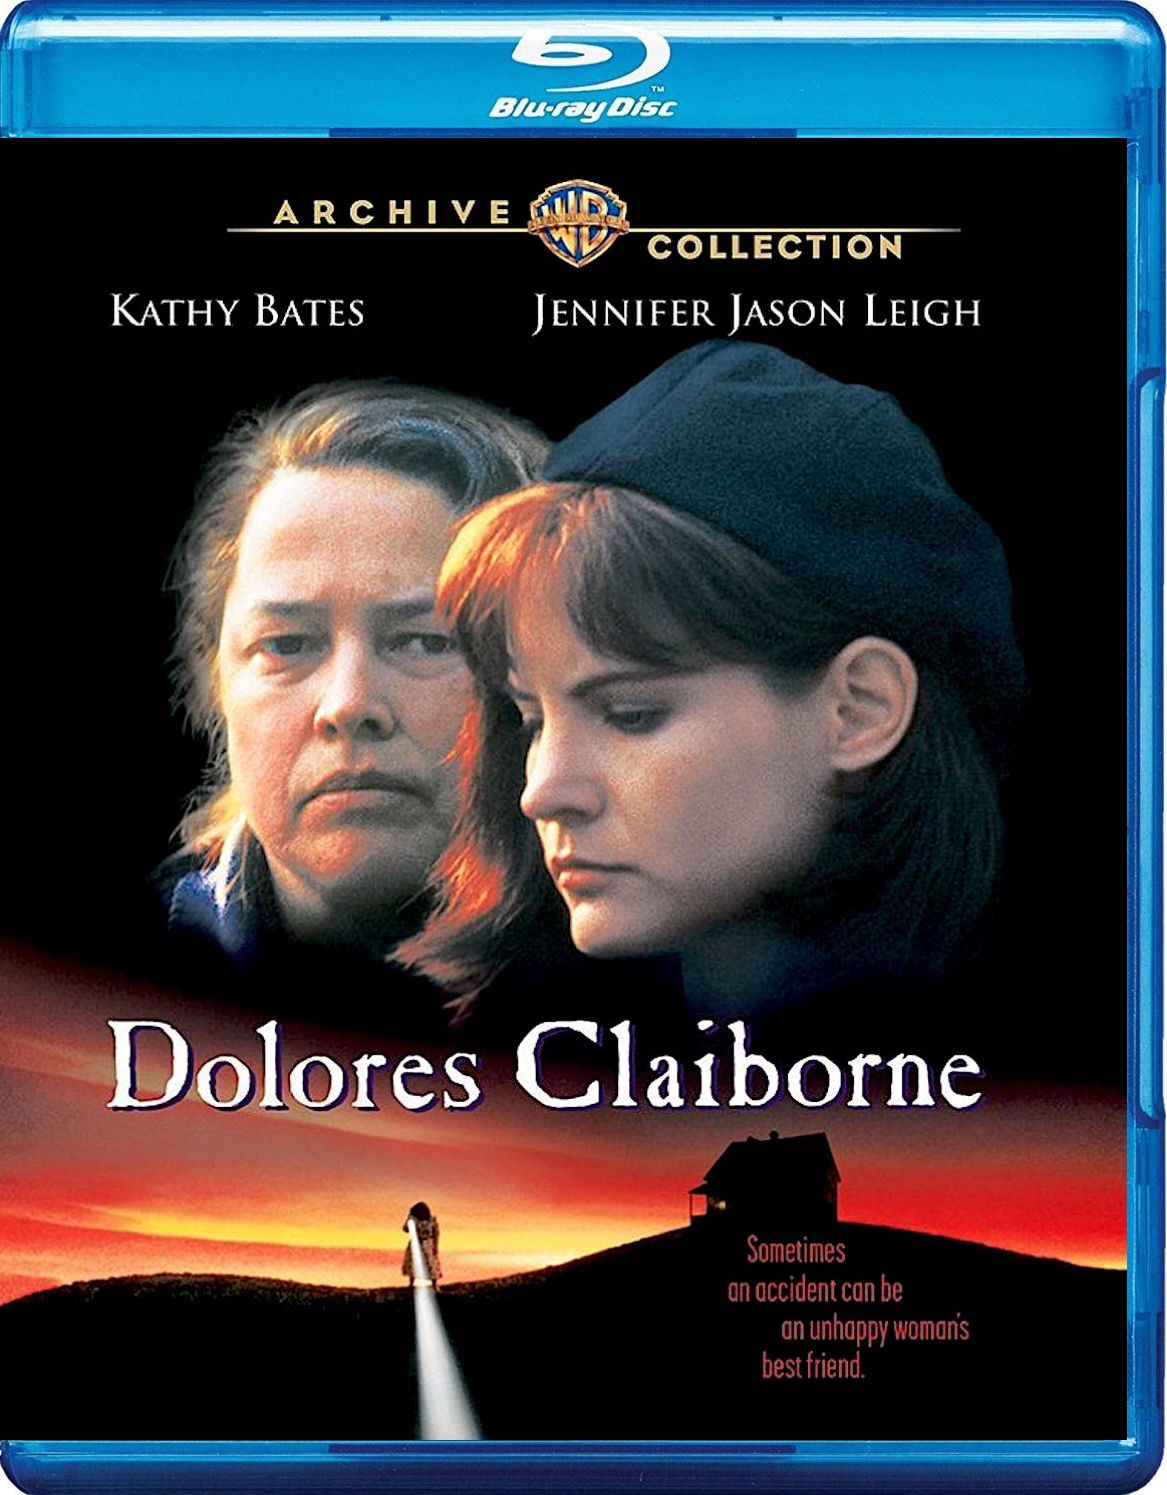 Dolores Claiborne Blu Ray Warner Archive Collection Dolores Claiborne Claiborne Blu